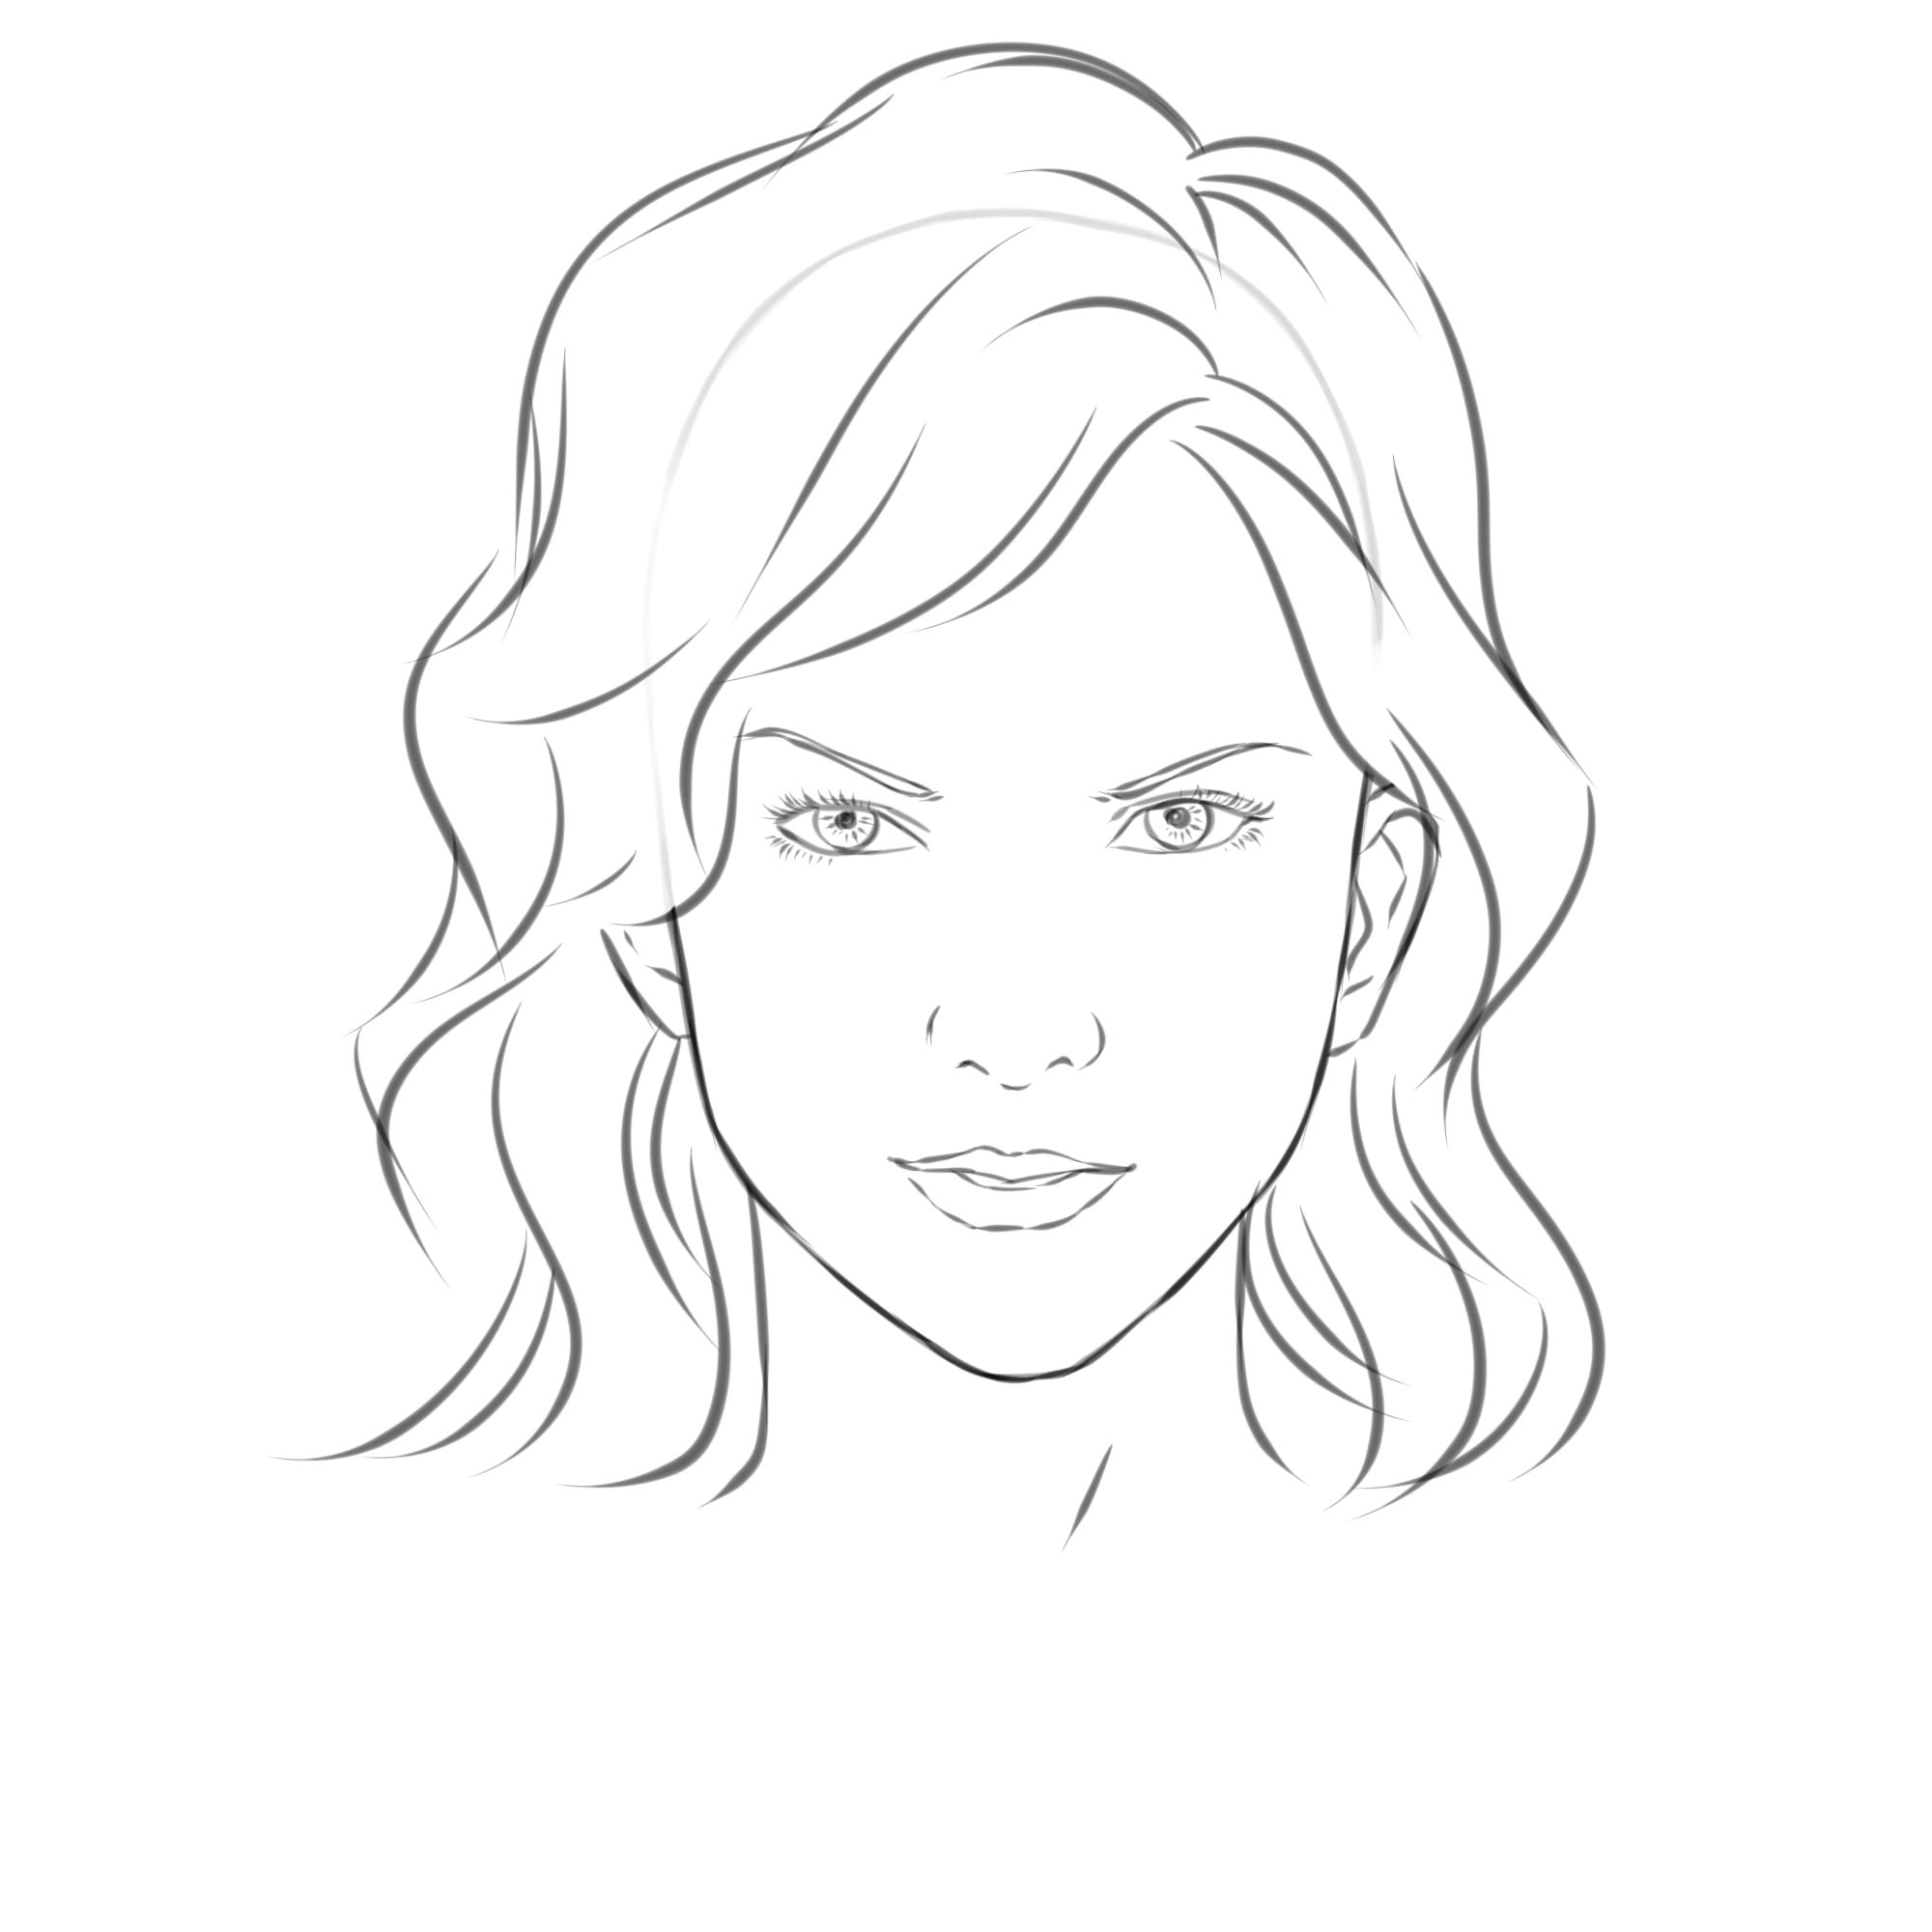 Face Easy Drawing At Getdrawings Com Free For Personal Use Face